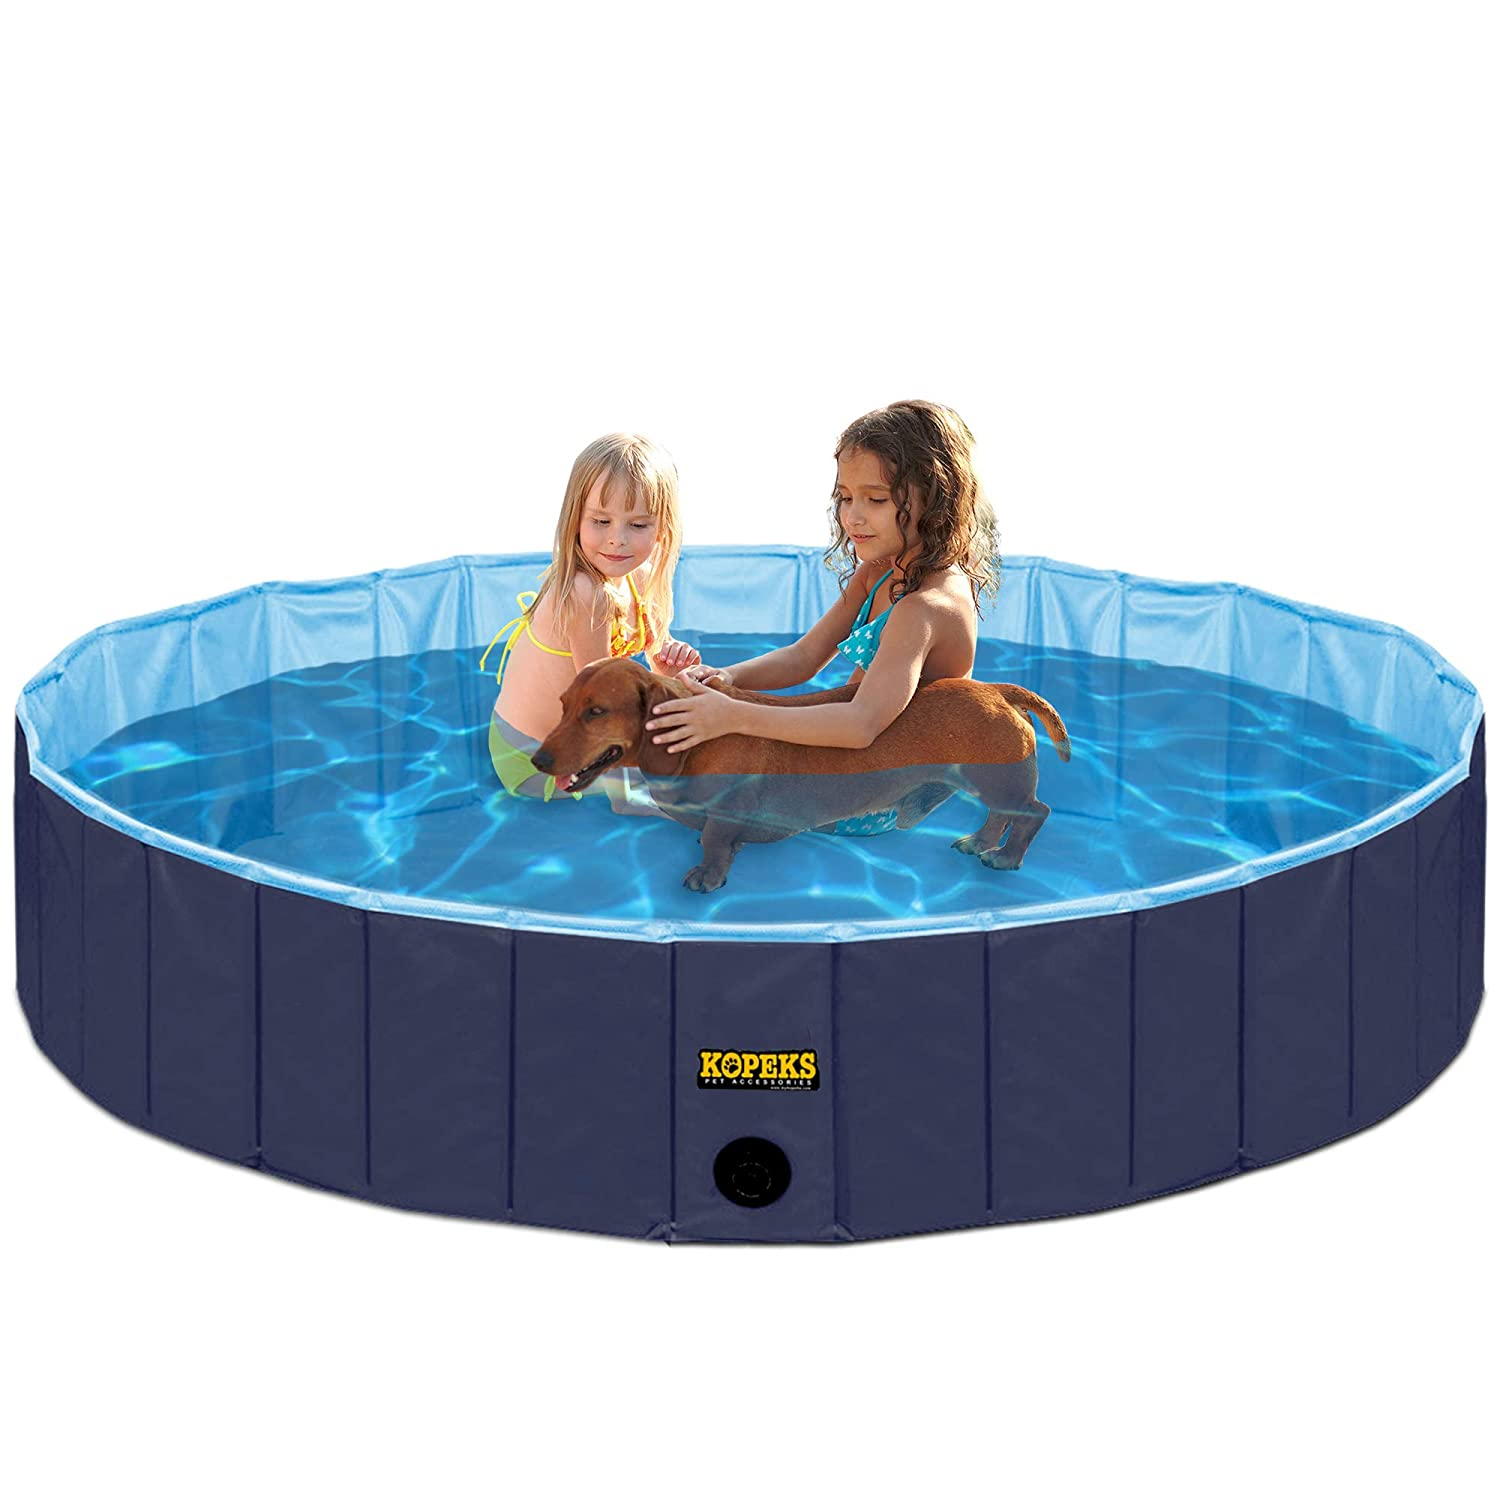 Outdoor Swimming Pool Bathing Tub - Portable Foldable - Ideal for Pets - Large 47 x 12 KOPEKS pool-blue-Large